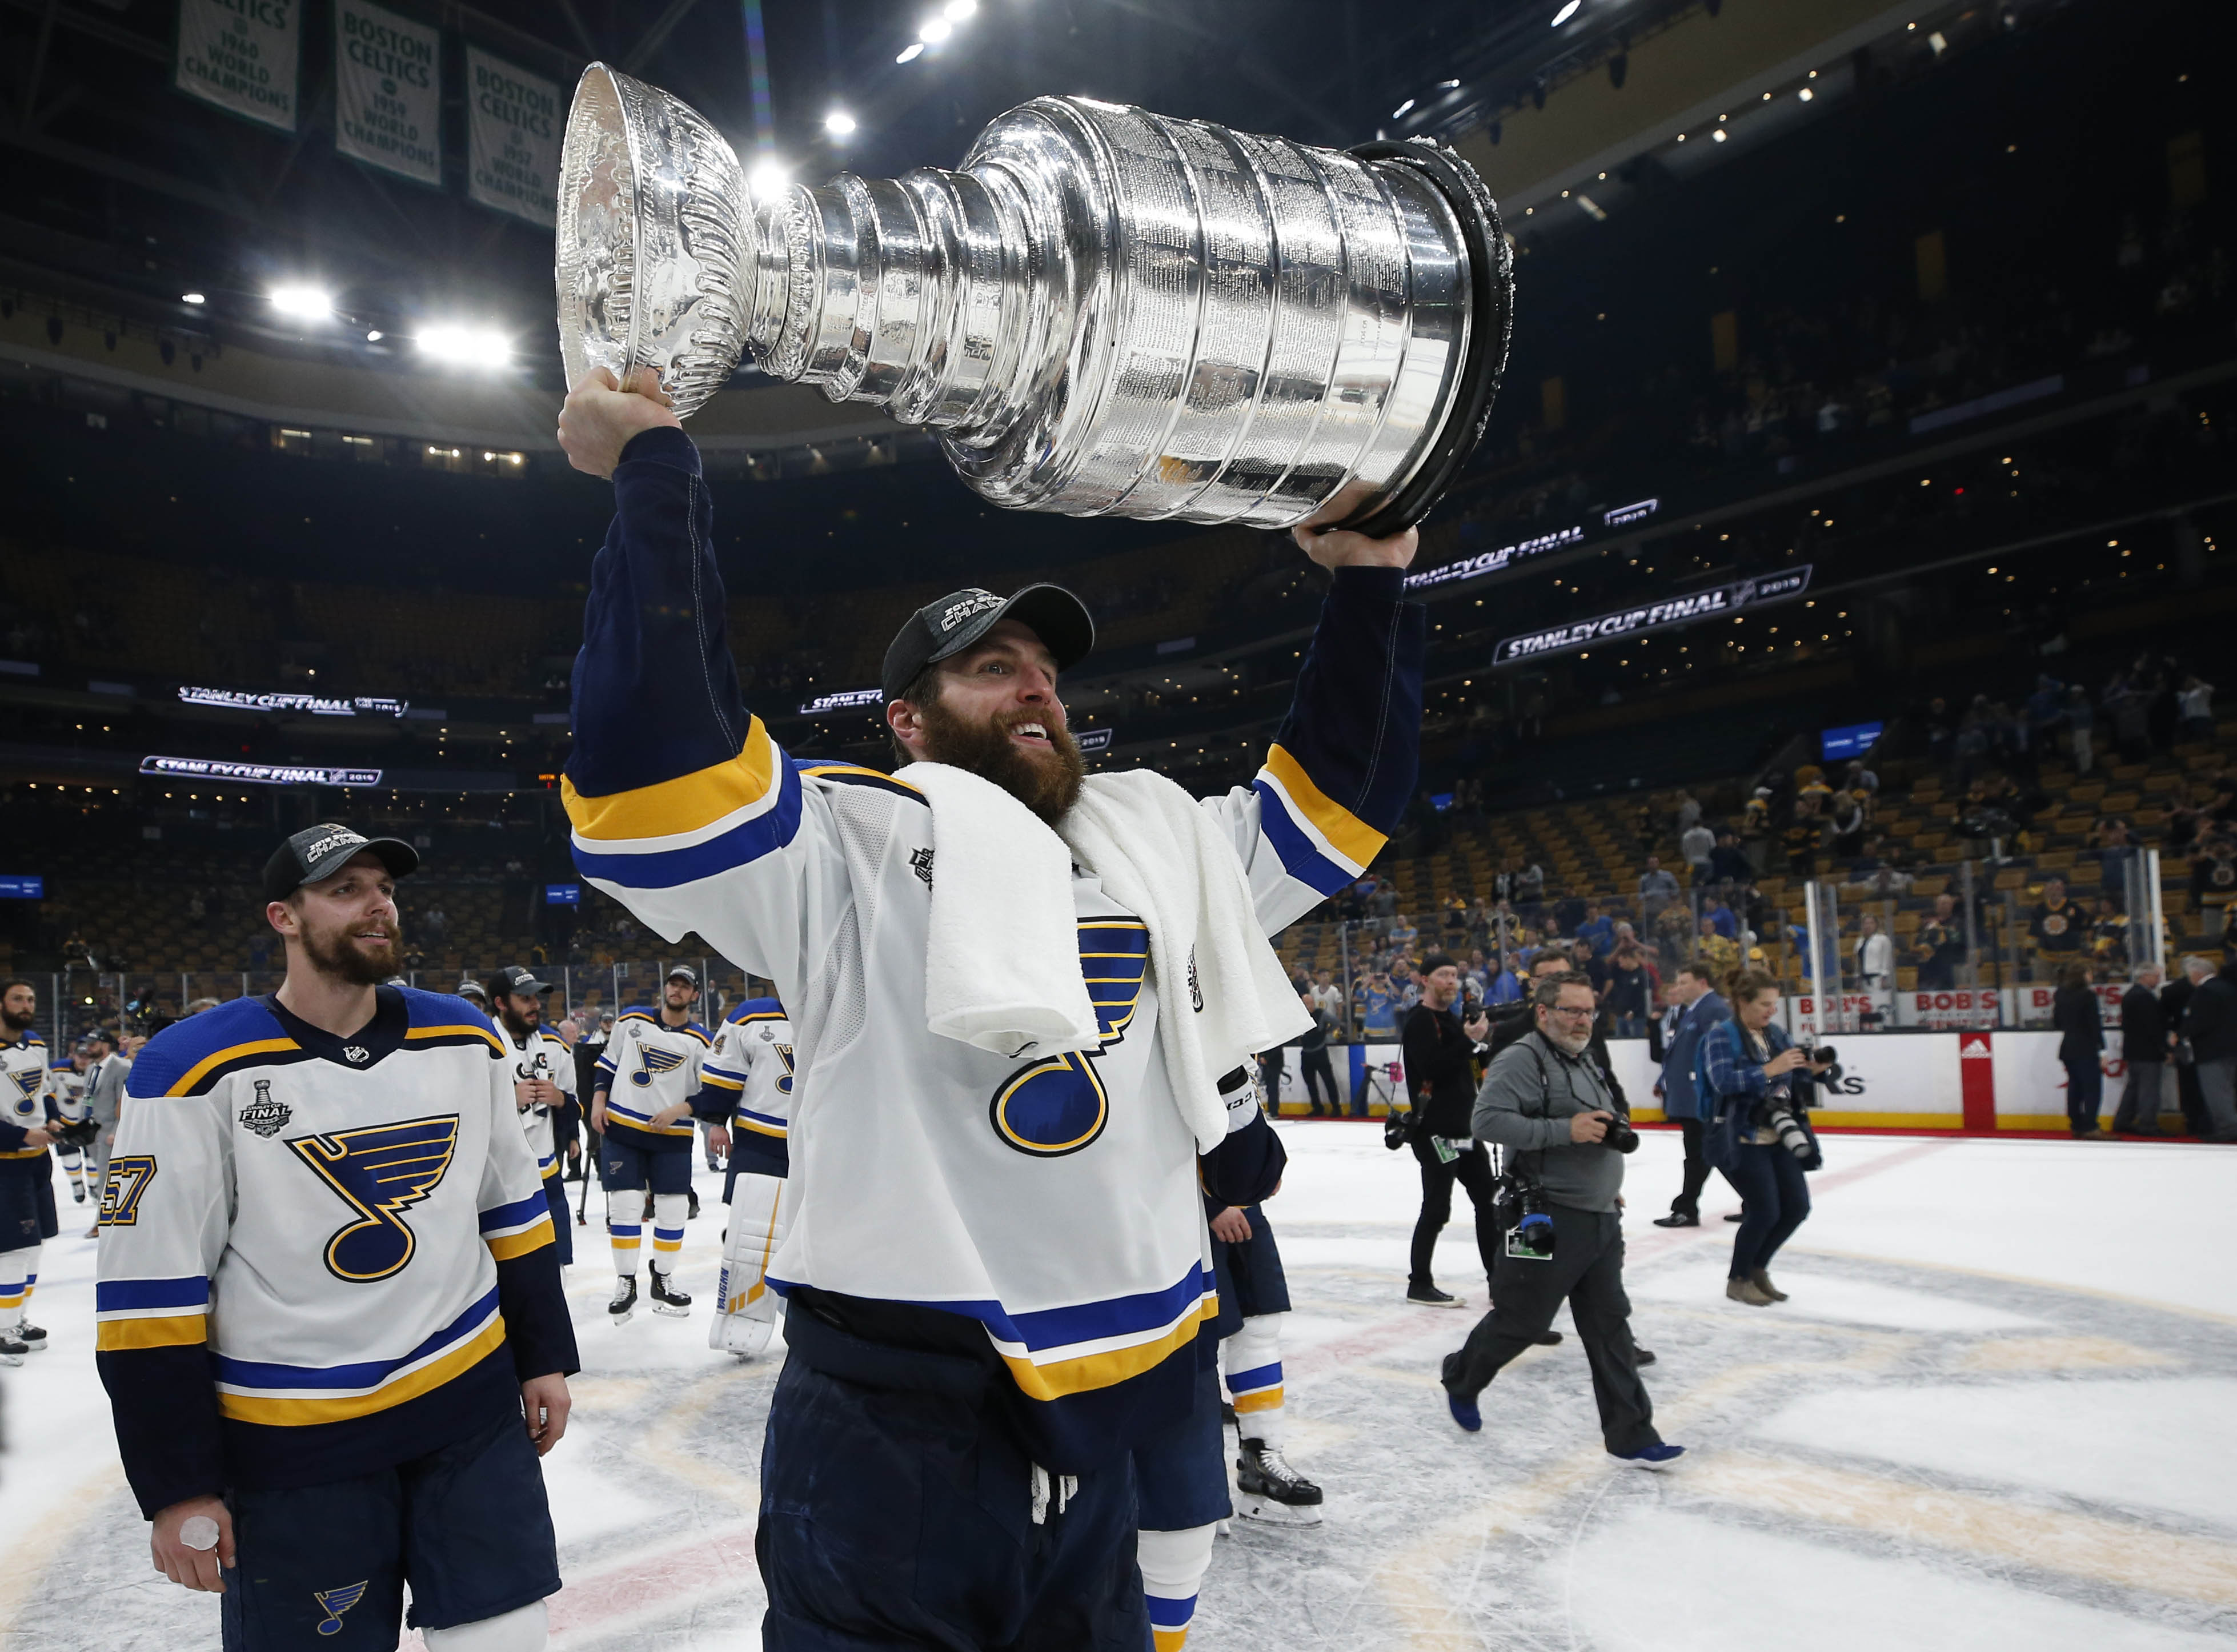 St. Louis Blues win first Stanley Cup in franchise history